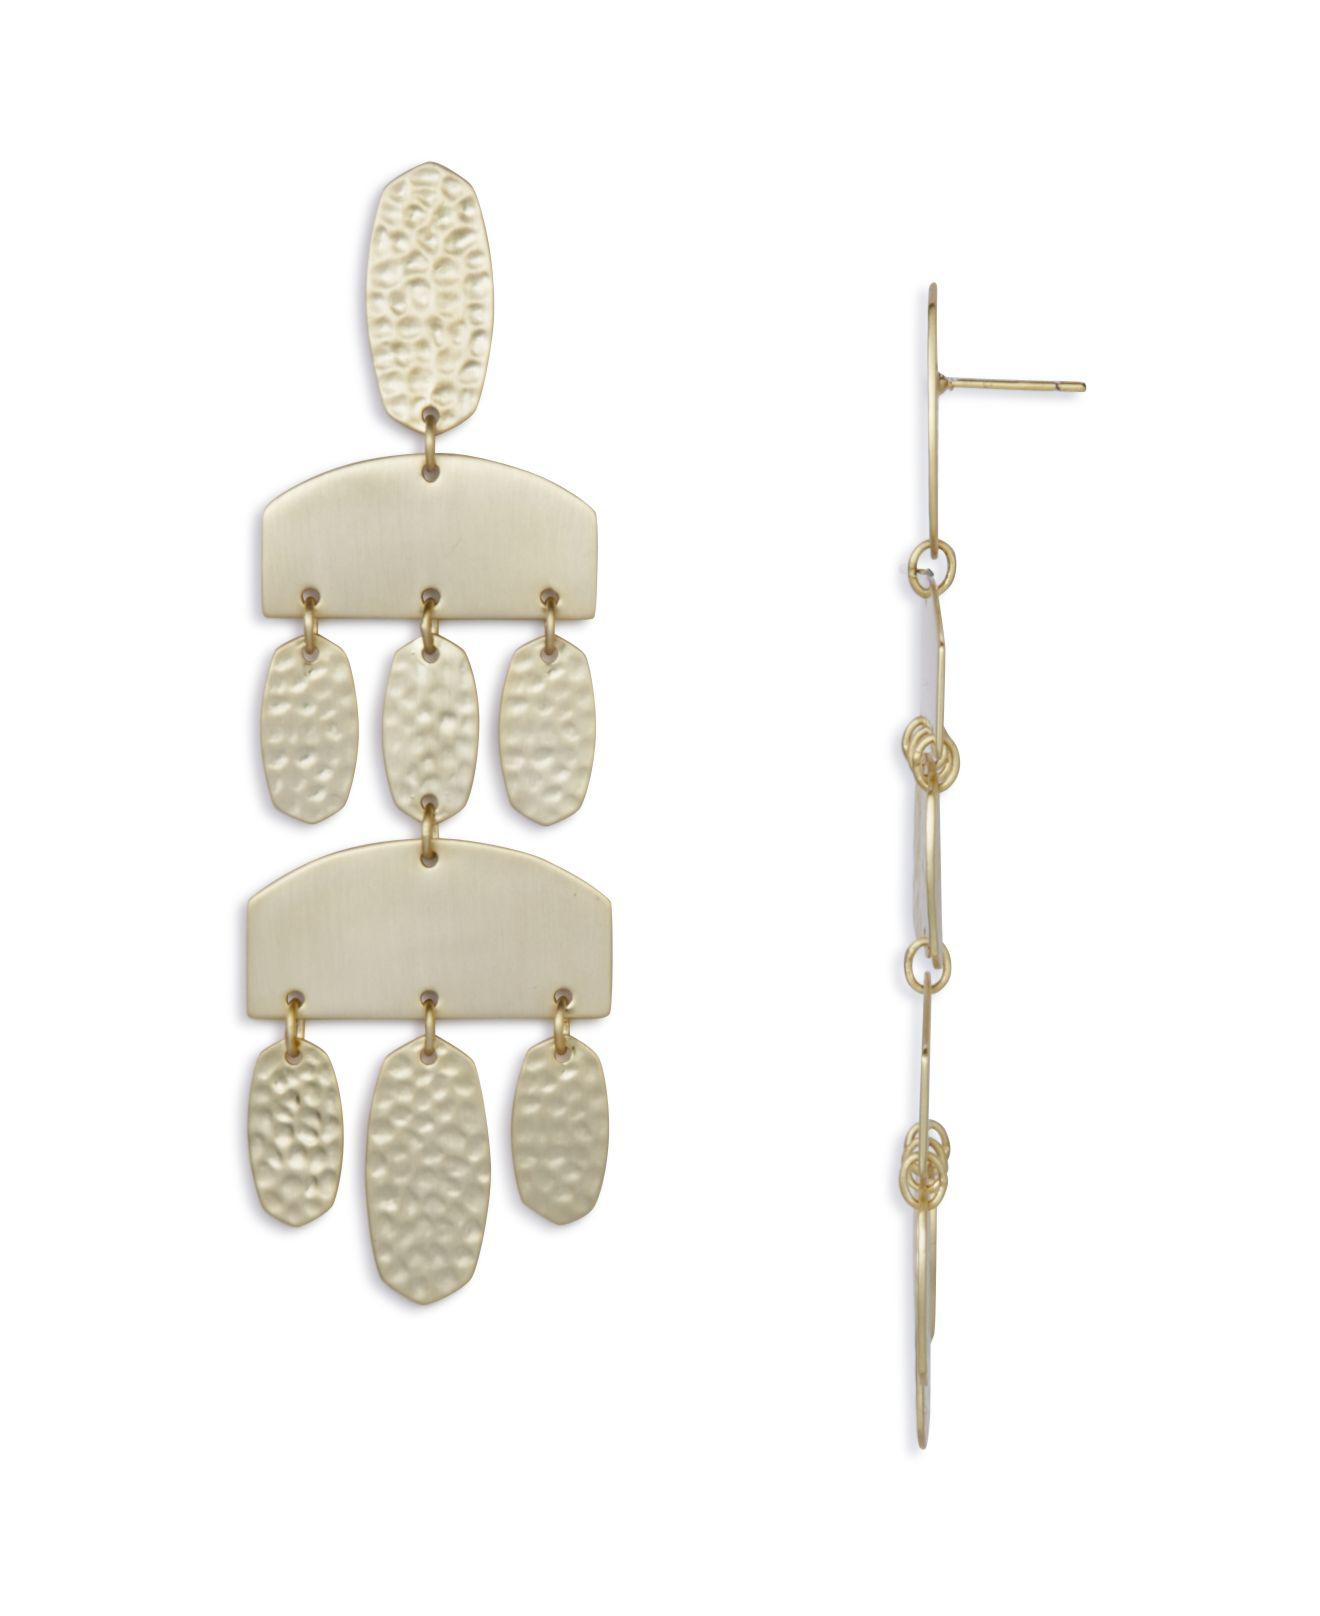 Kendra Scott Emmet Chandelier Earrings 5WaaCvI